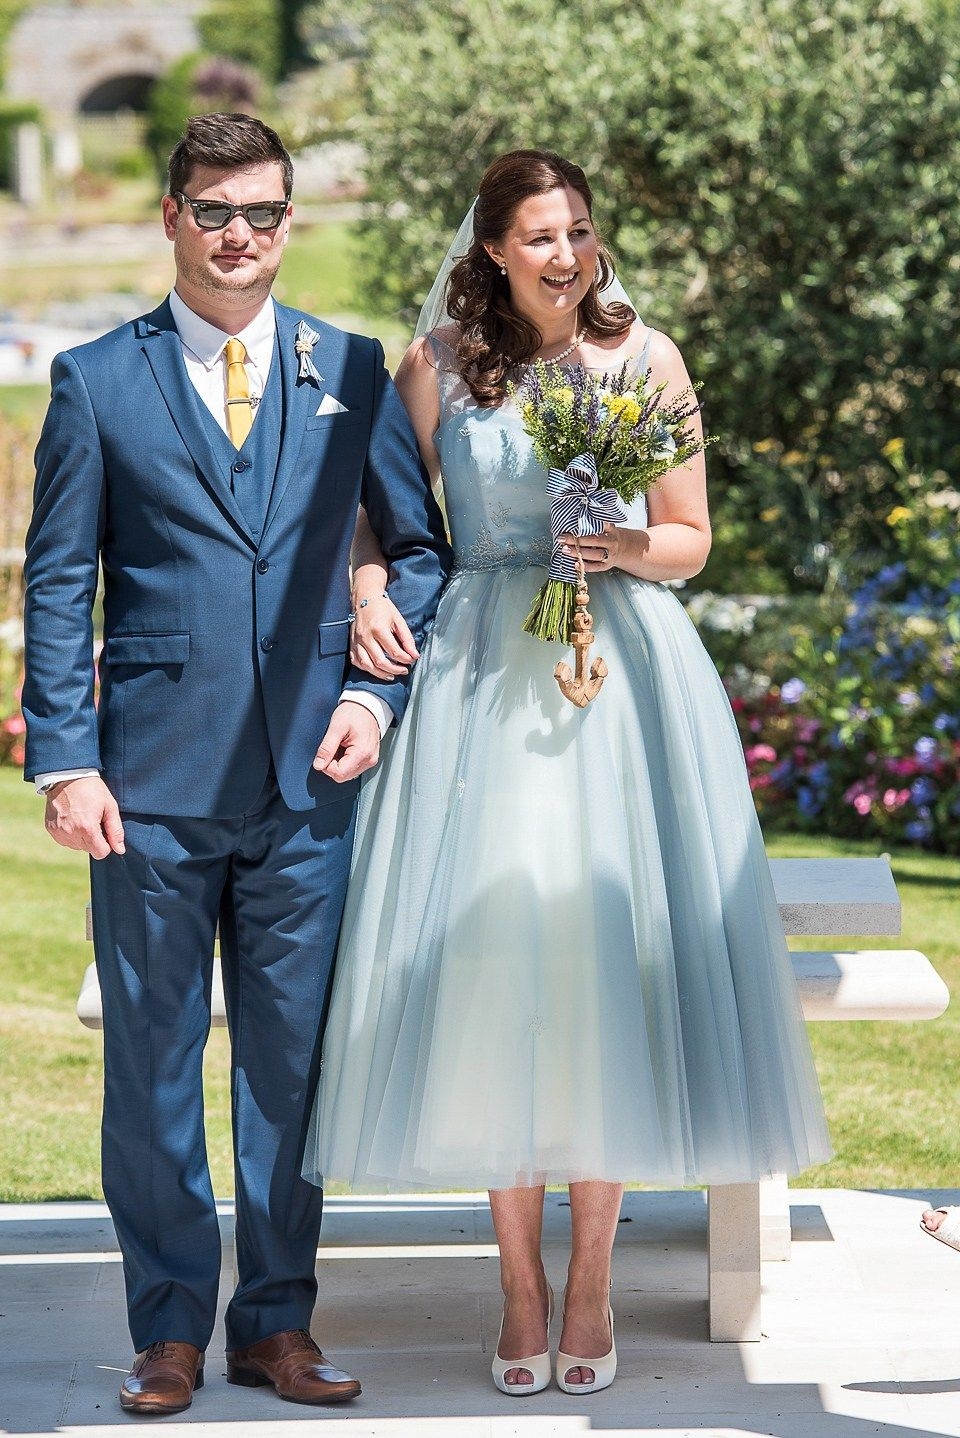 A Pretty Pale Blue Wedding Dress for a Nautical Inspired Summer ...